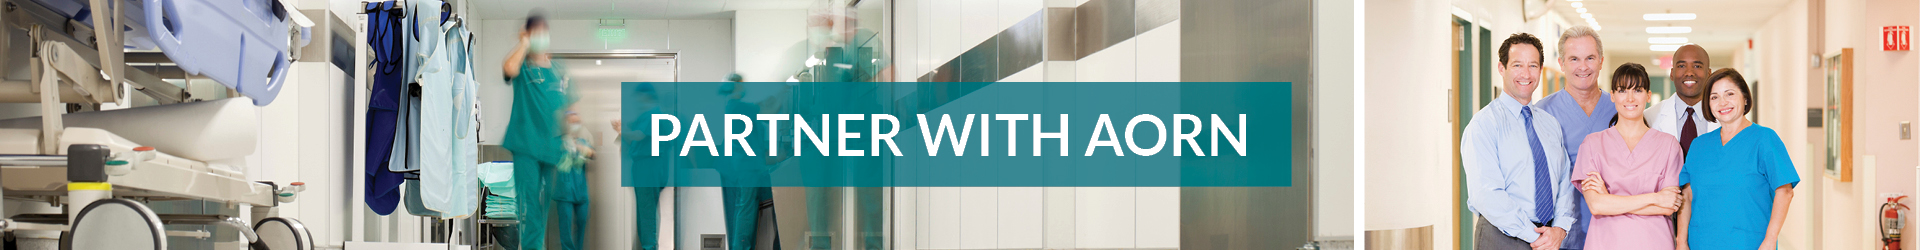 Partner with AORN